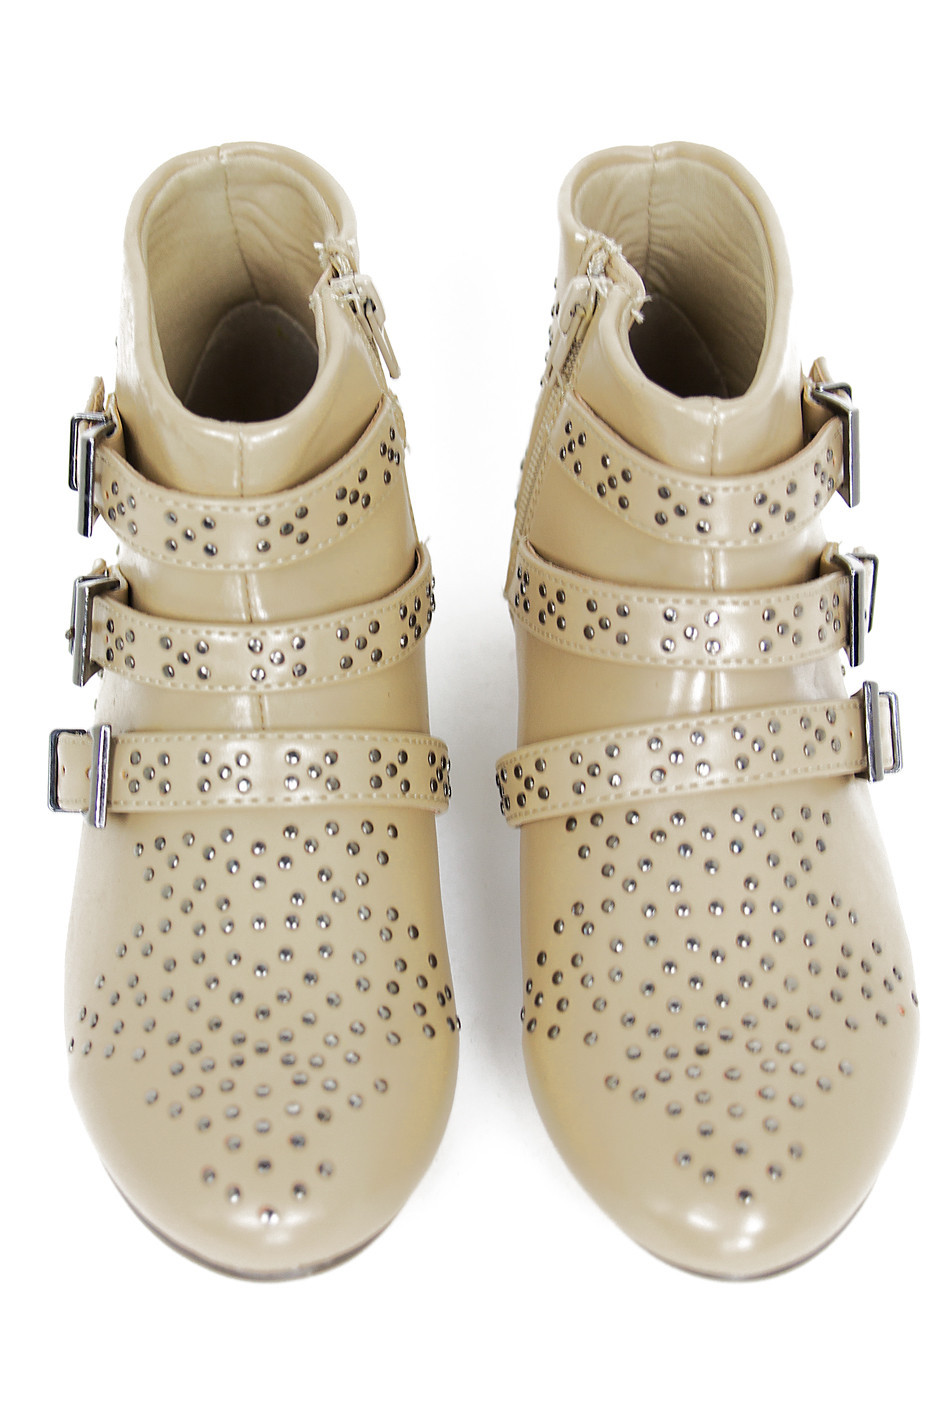 STUDDED ANKLE BOOTS - Beige   Haute & Rebellious